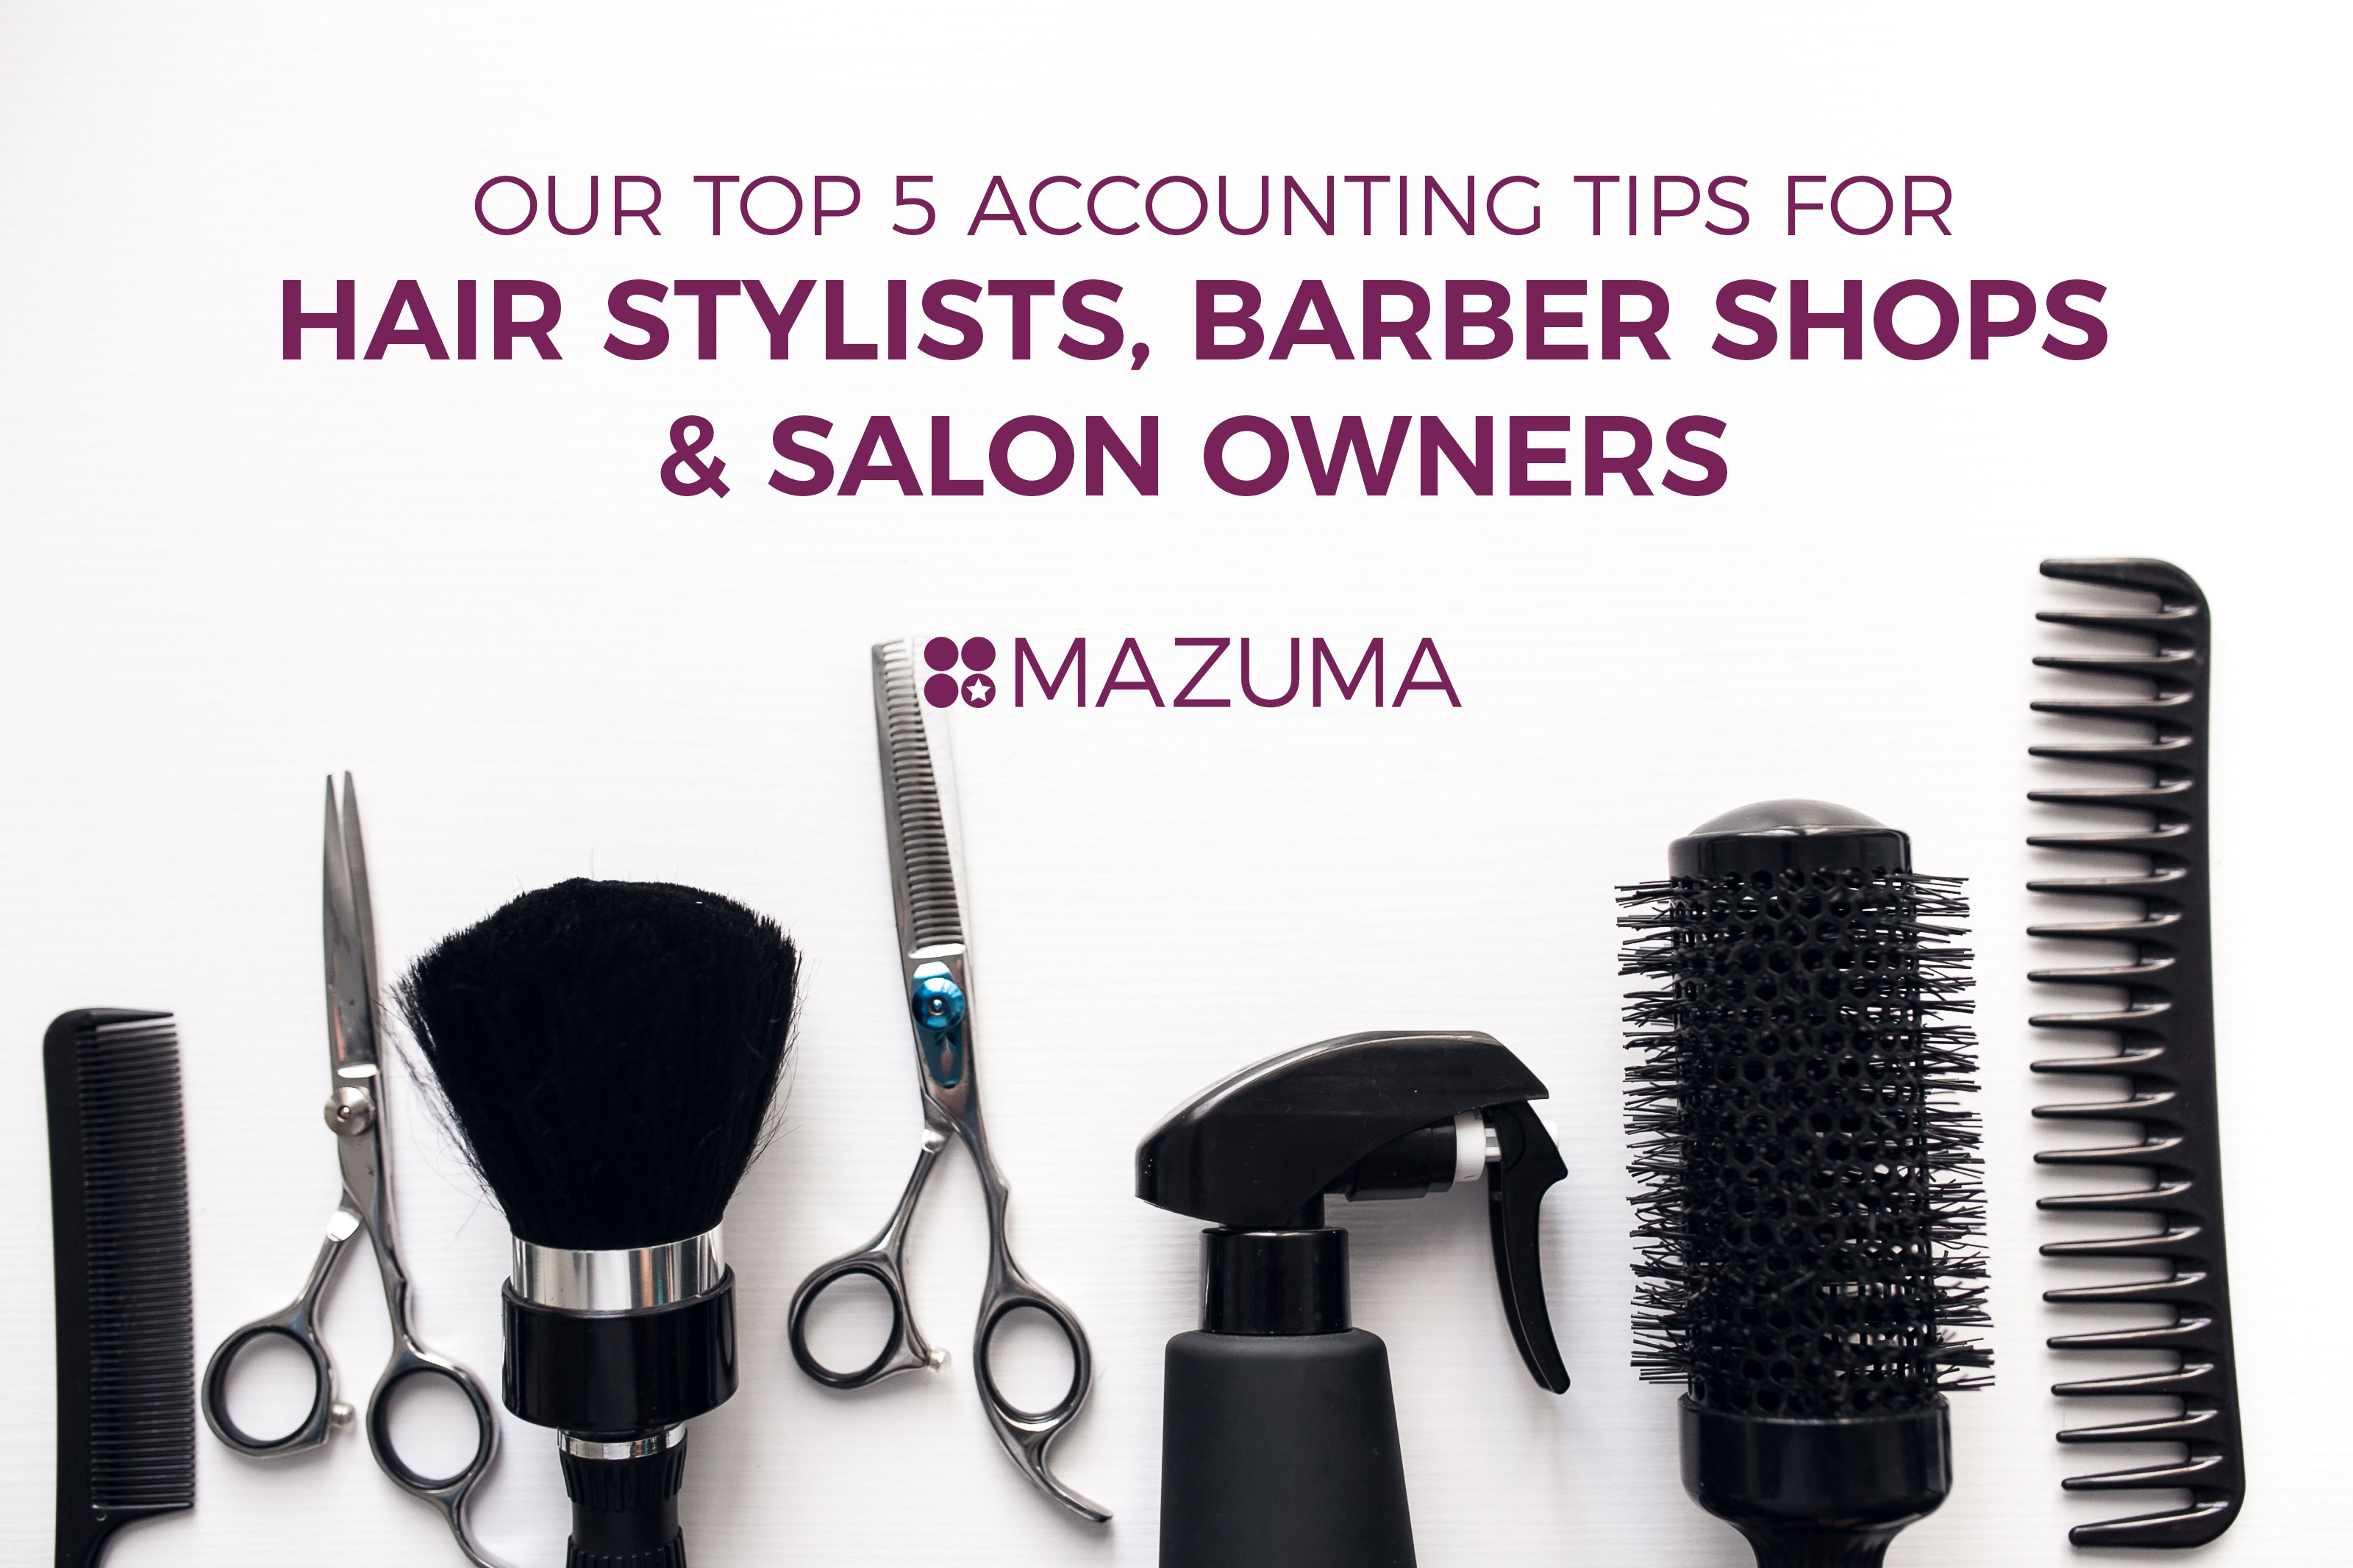 Top 5 Accounting Tips for Hair Stylists, Barber Shops